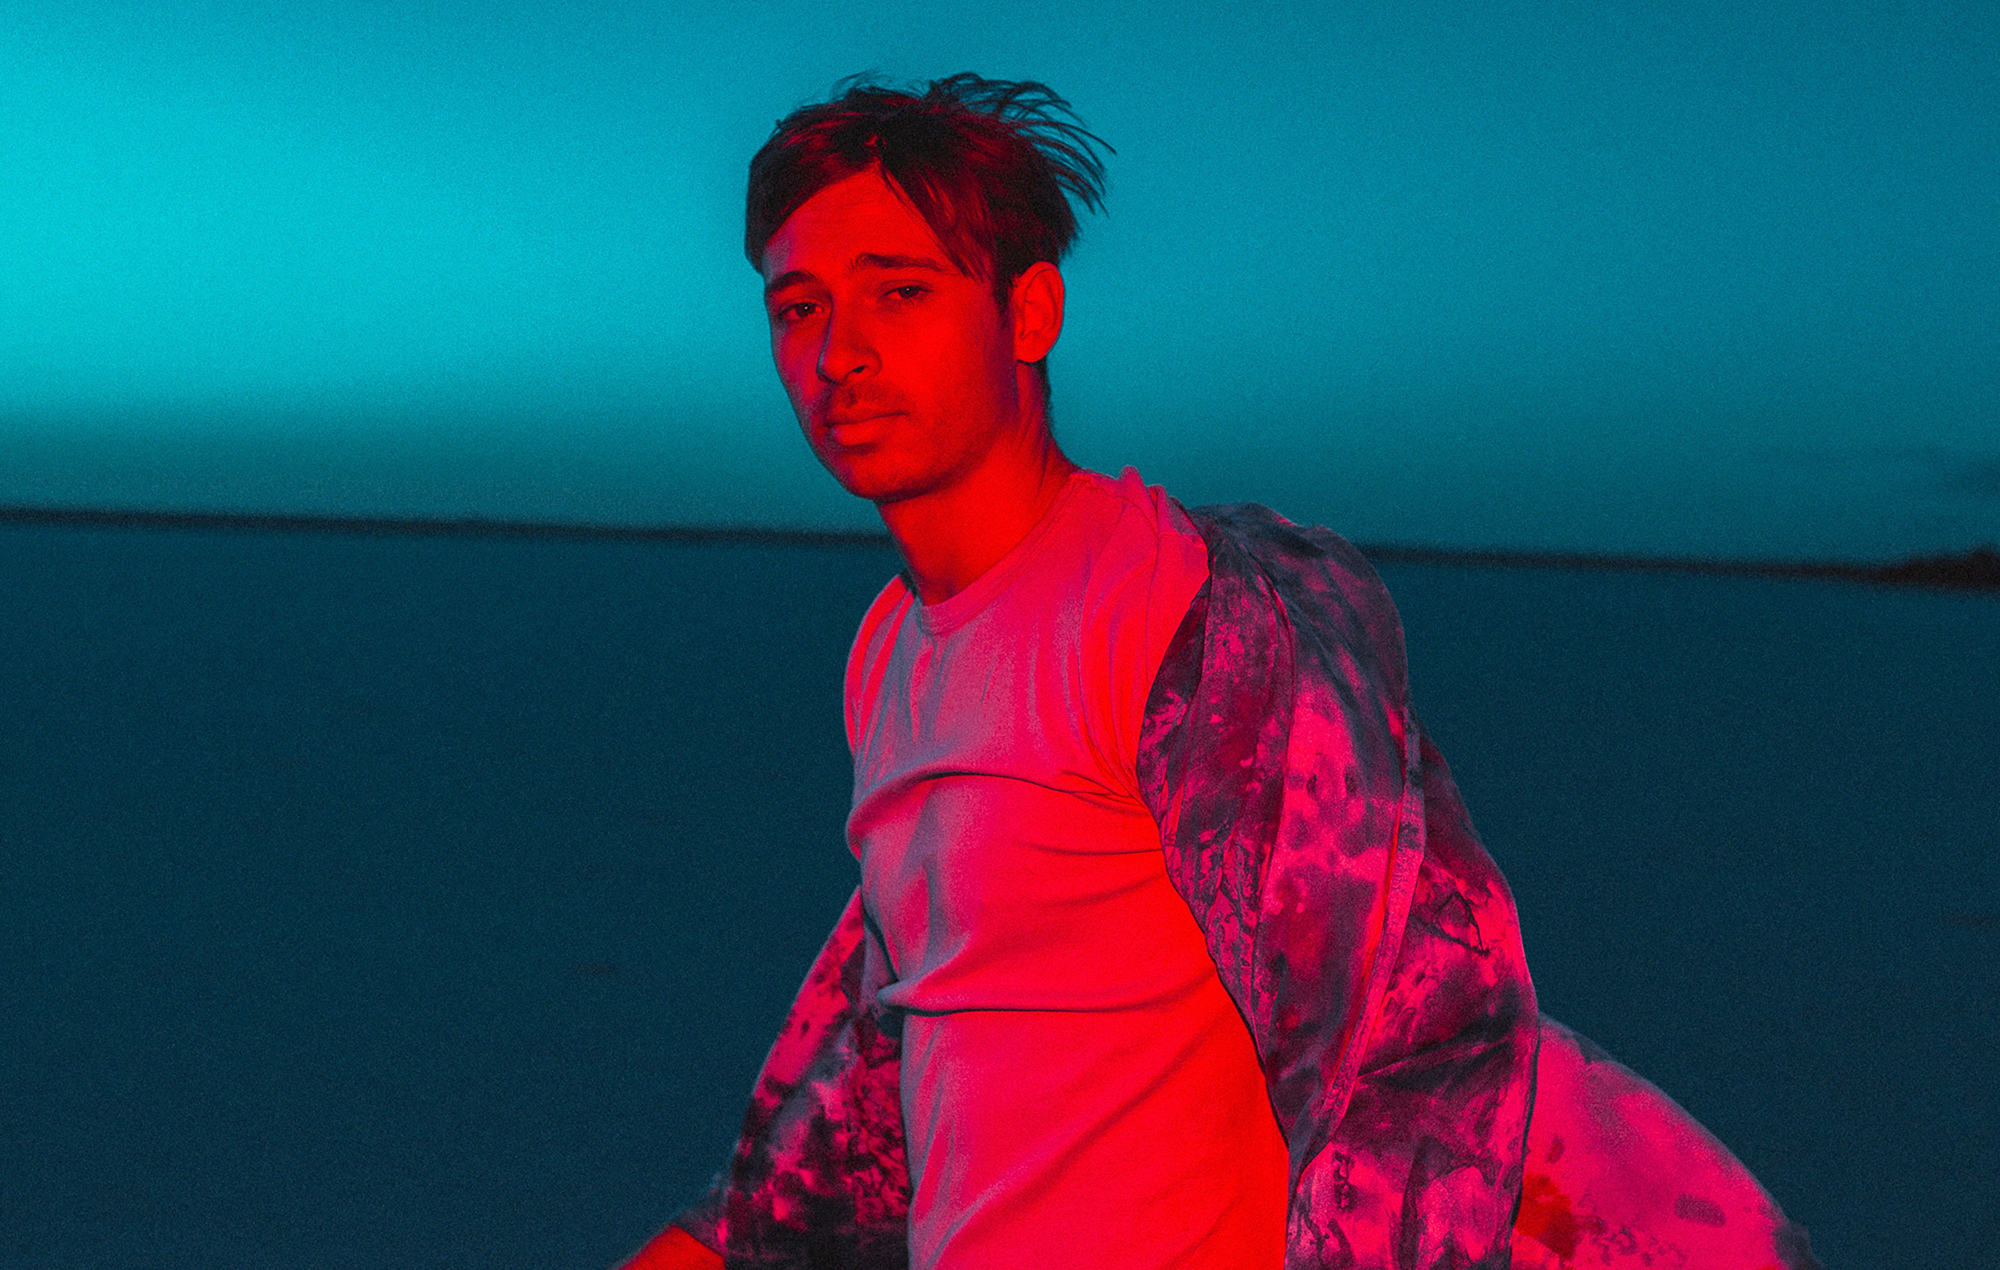 Flume to perform at Splendour In The Grass 2020